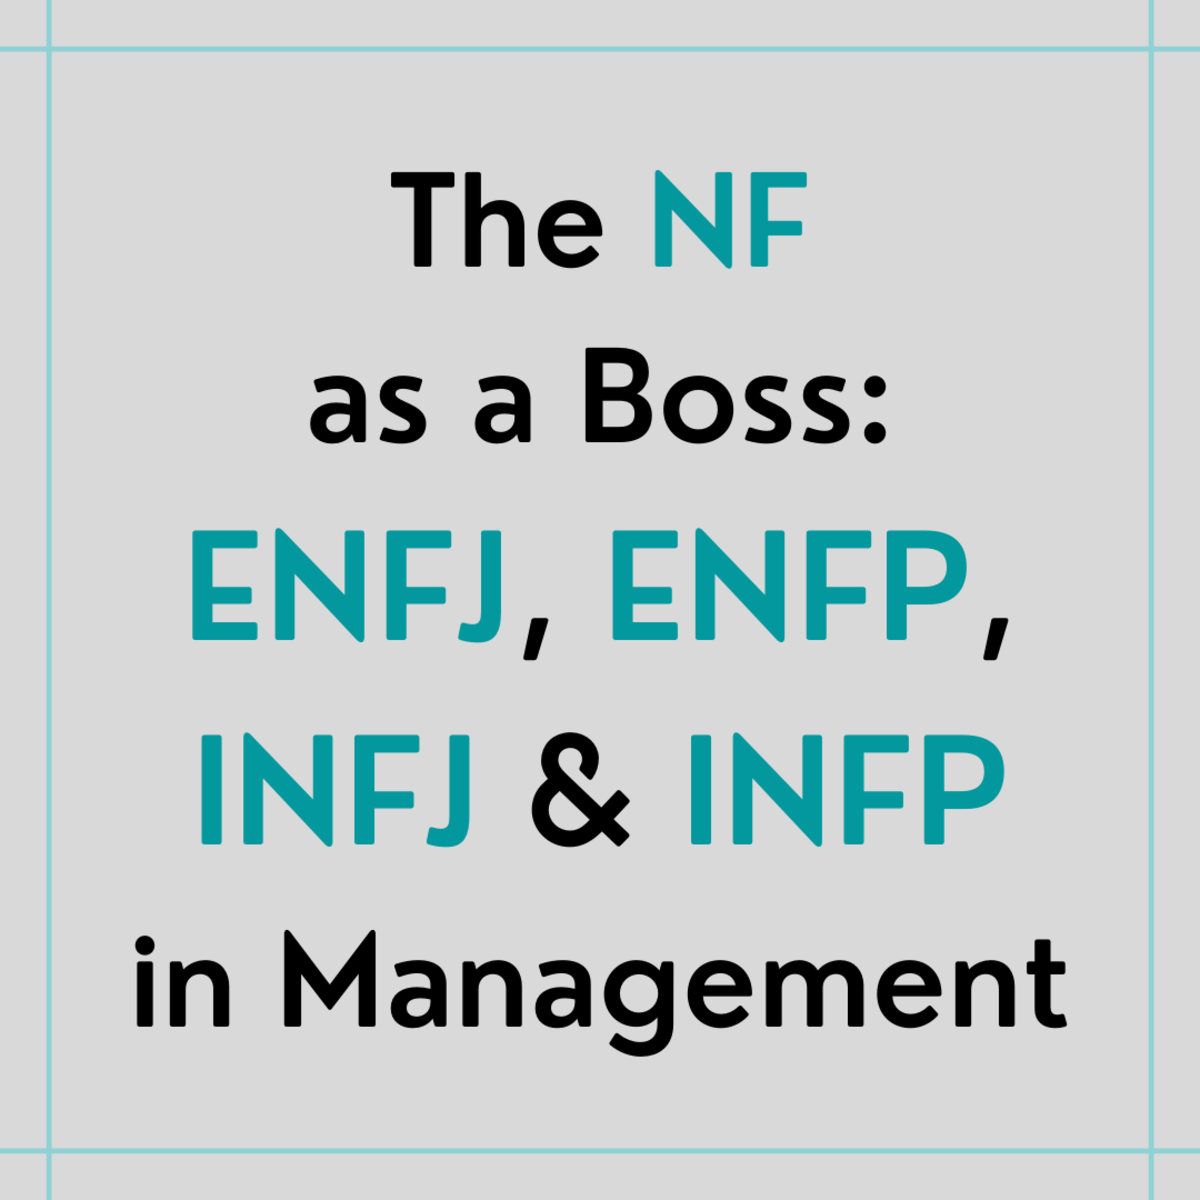 Spineless Bosses: NF Personality Type in Employee Management